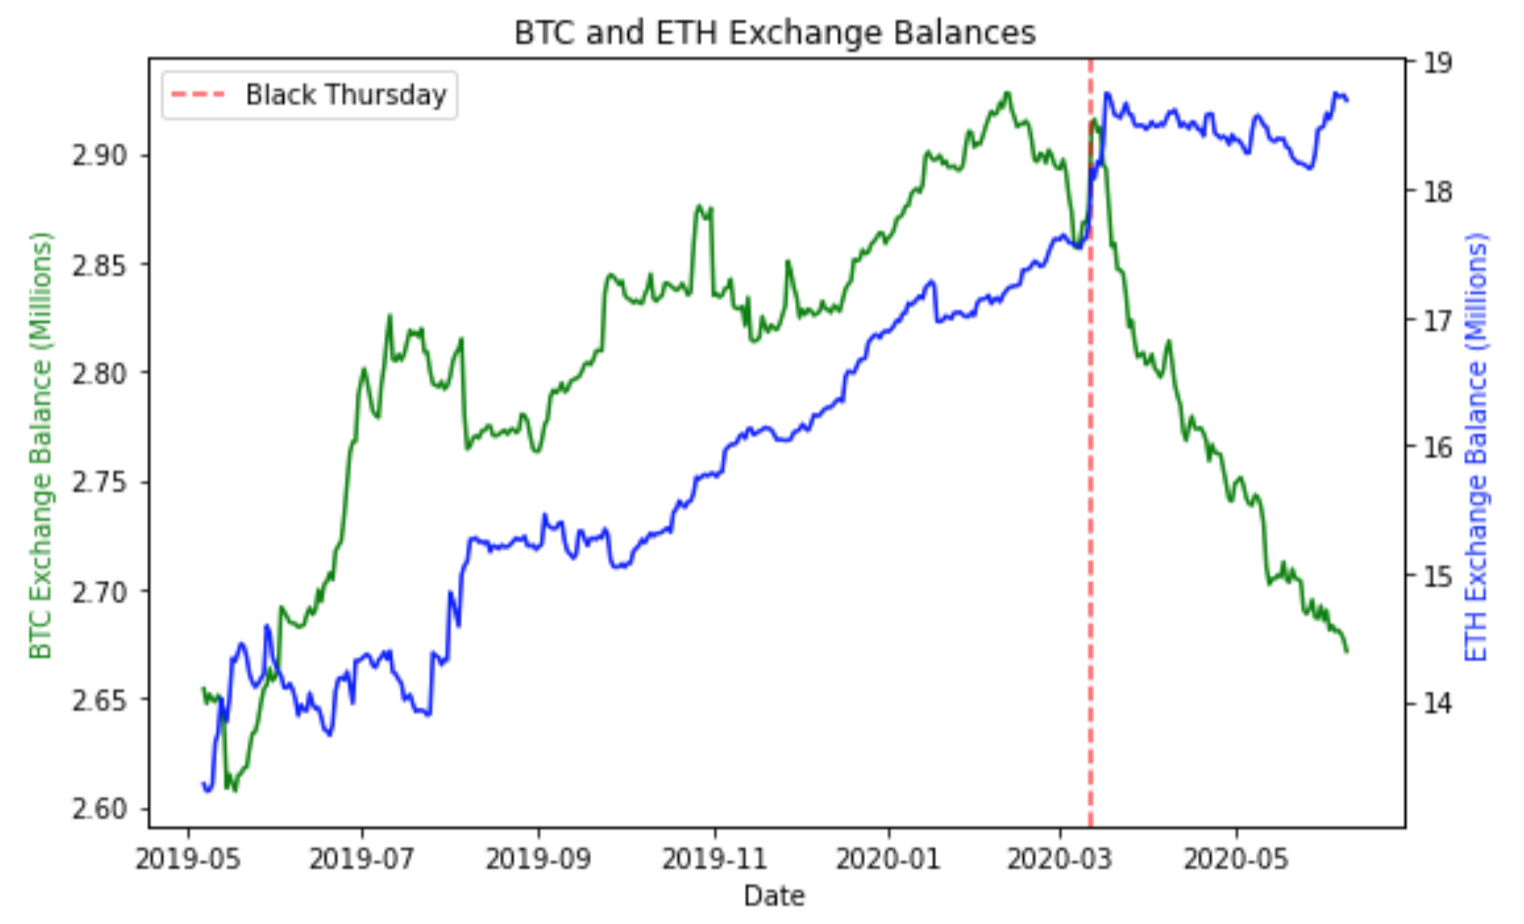 ETH, BTC exchange balance comparison